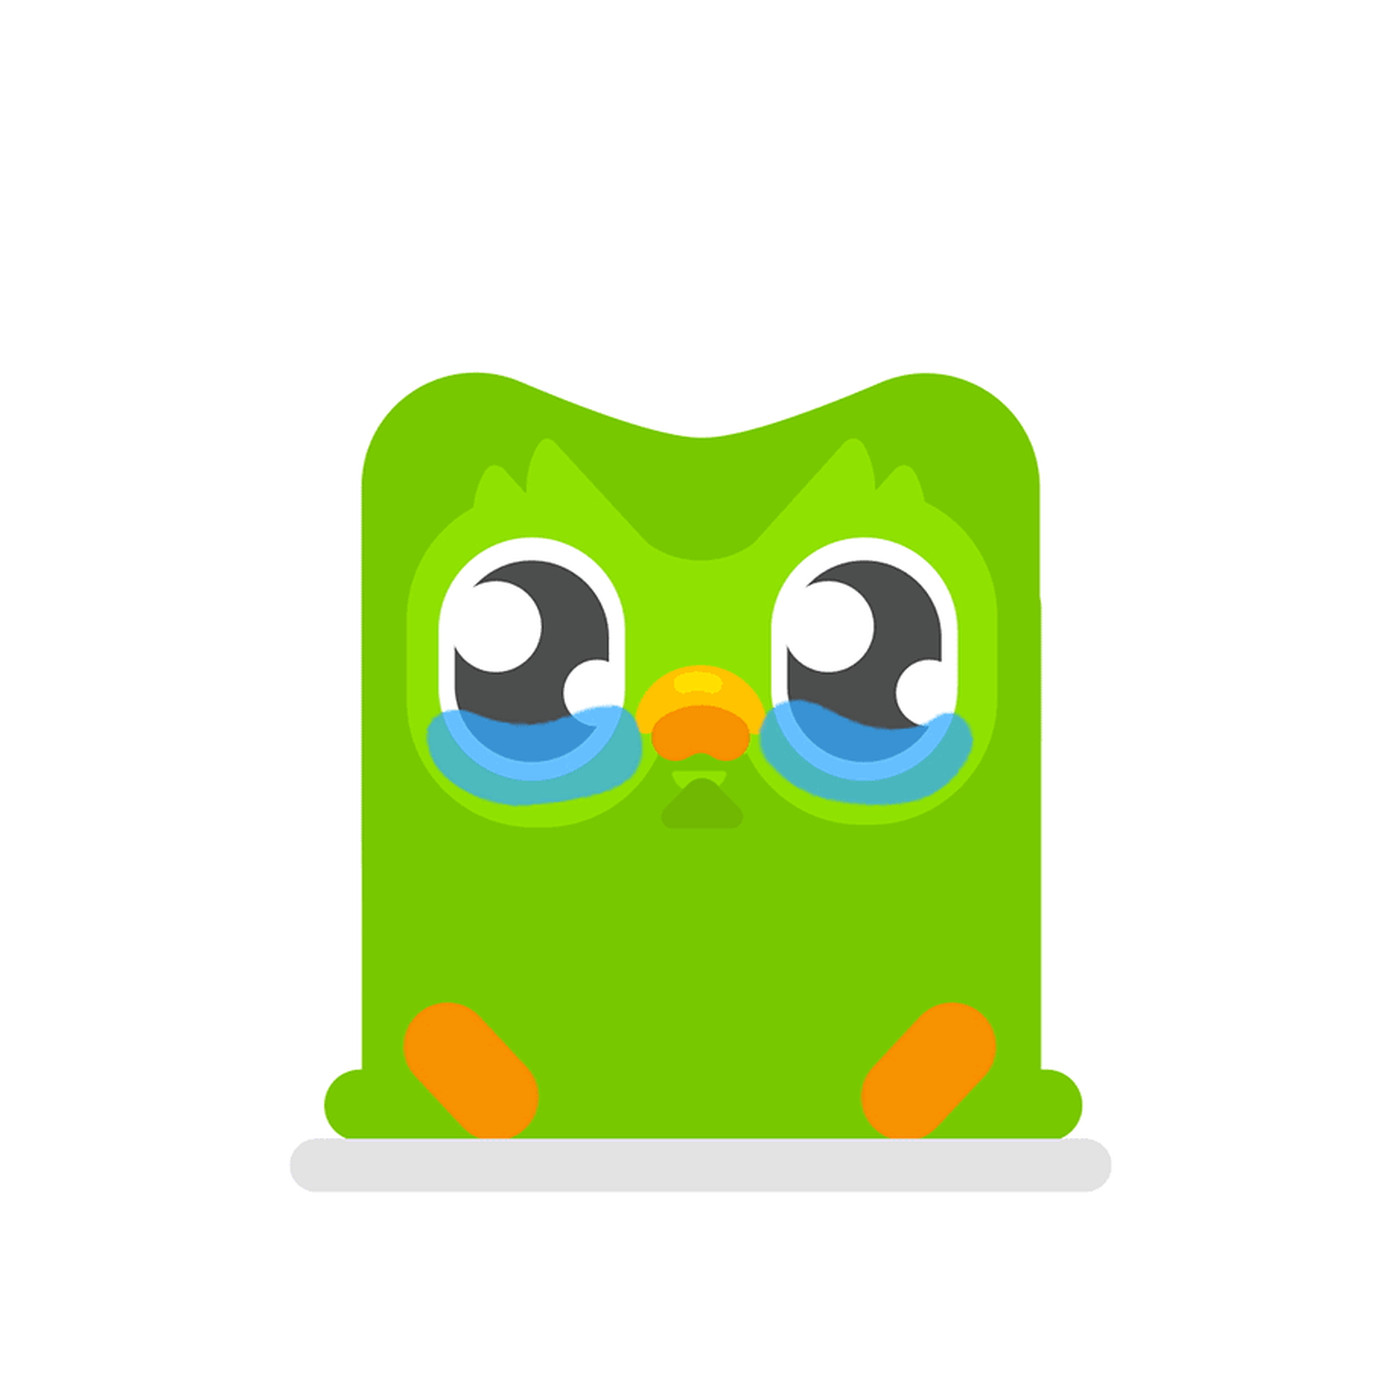 Duolingo redesigned its owl to guilt-trip you even harder